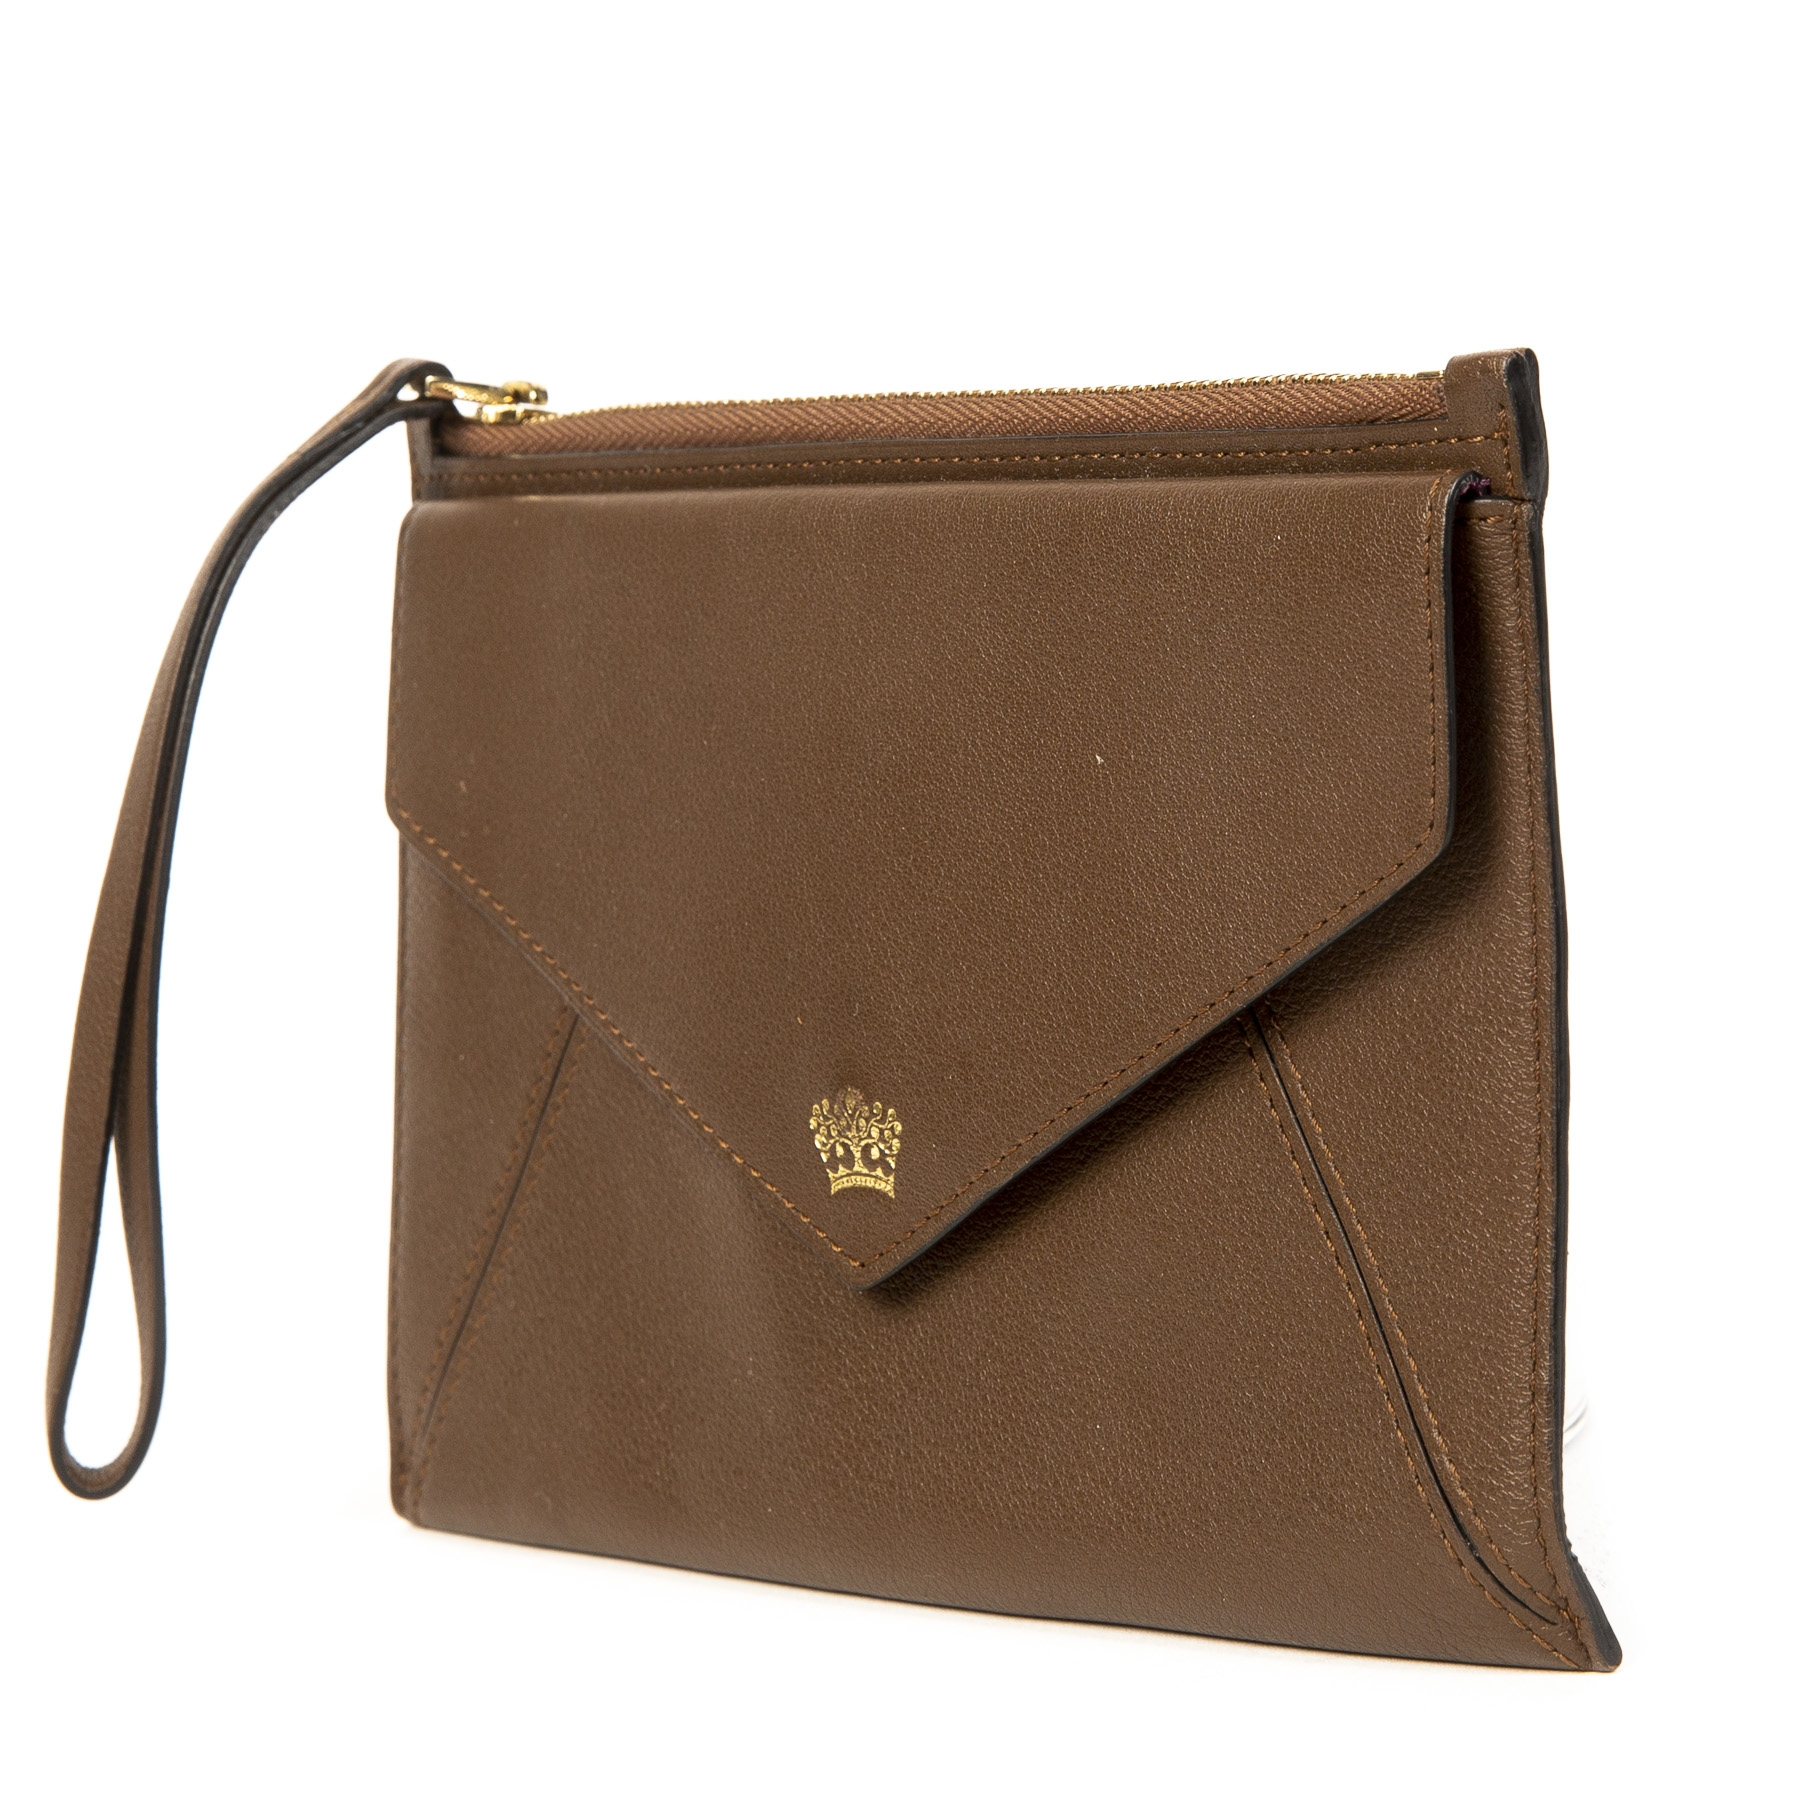 We buy and sell your authentic Delvaux Brown Pouch